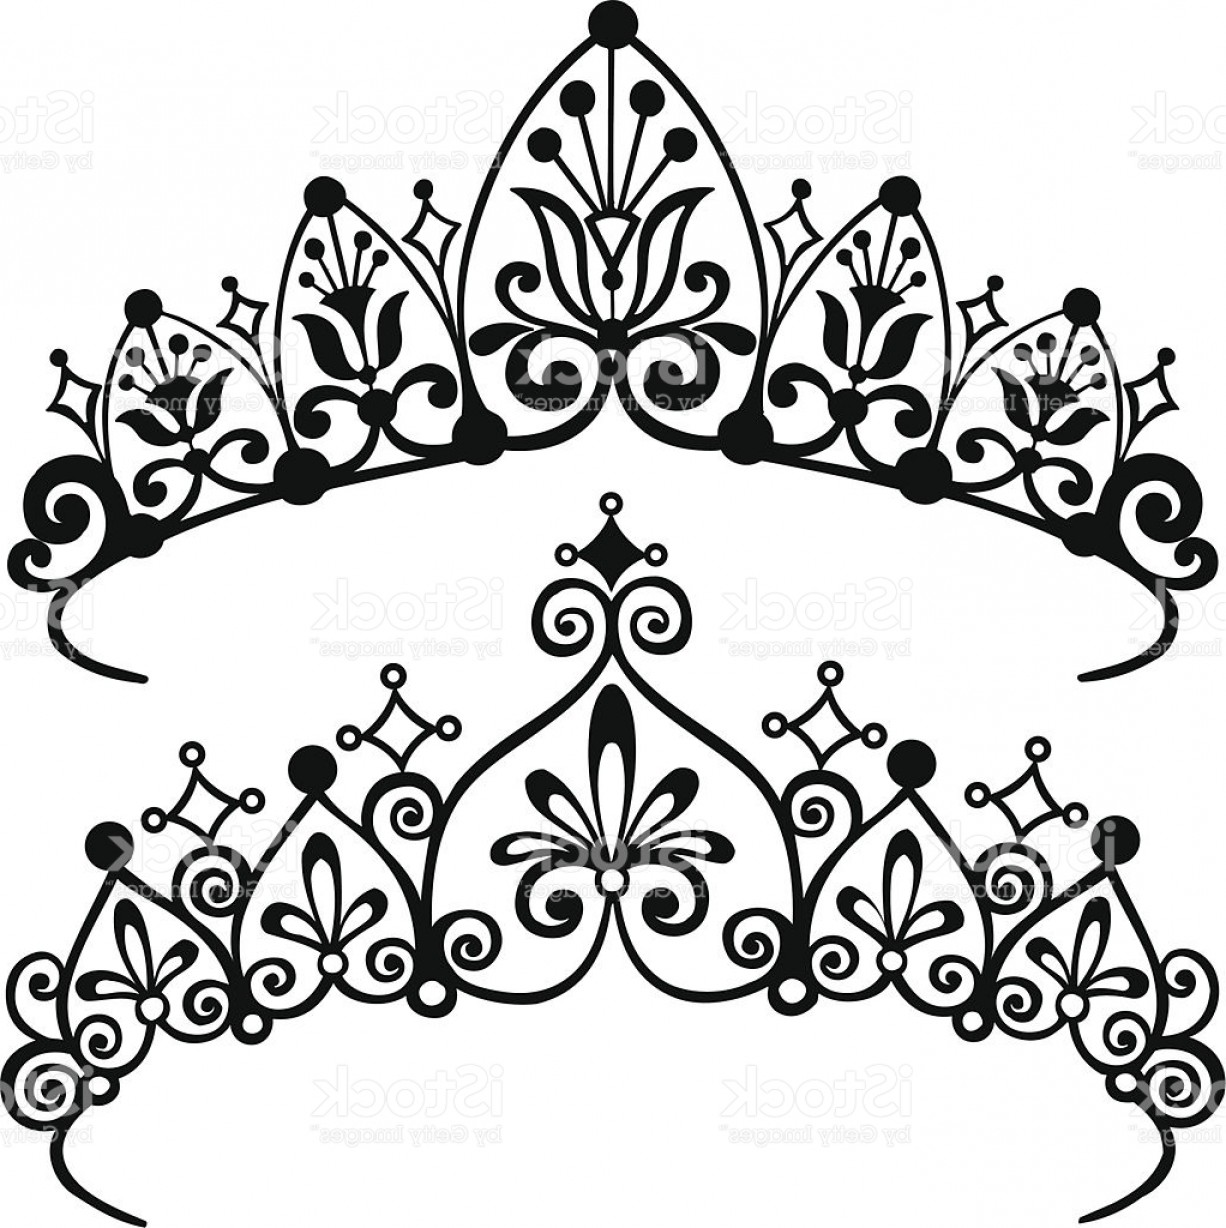 1226x1228 Princess Tiara Crowns Silhouette Vector Illustration Gm Createmepink